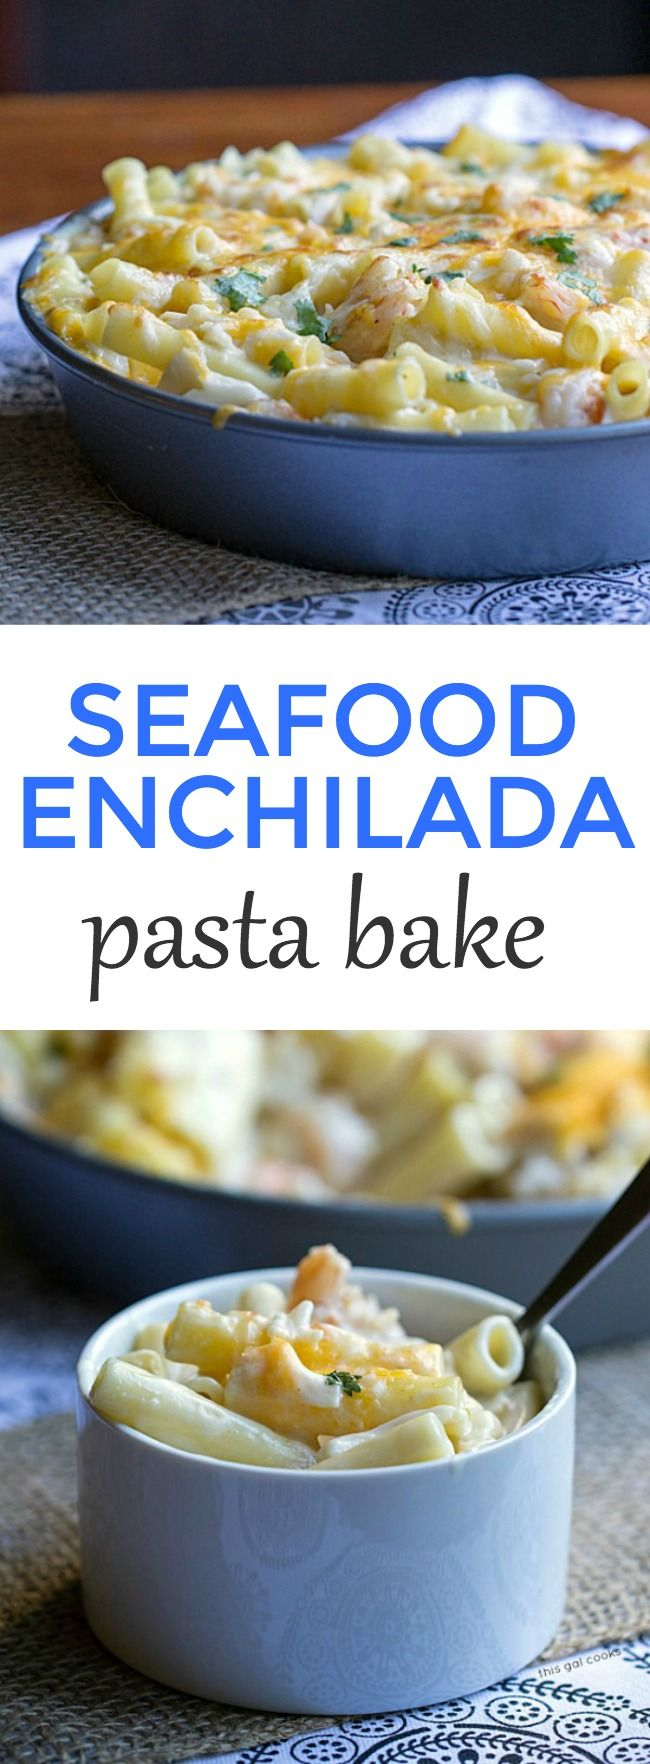 For dinner: Super simple Seafood Enchilada Pasta Bake.